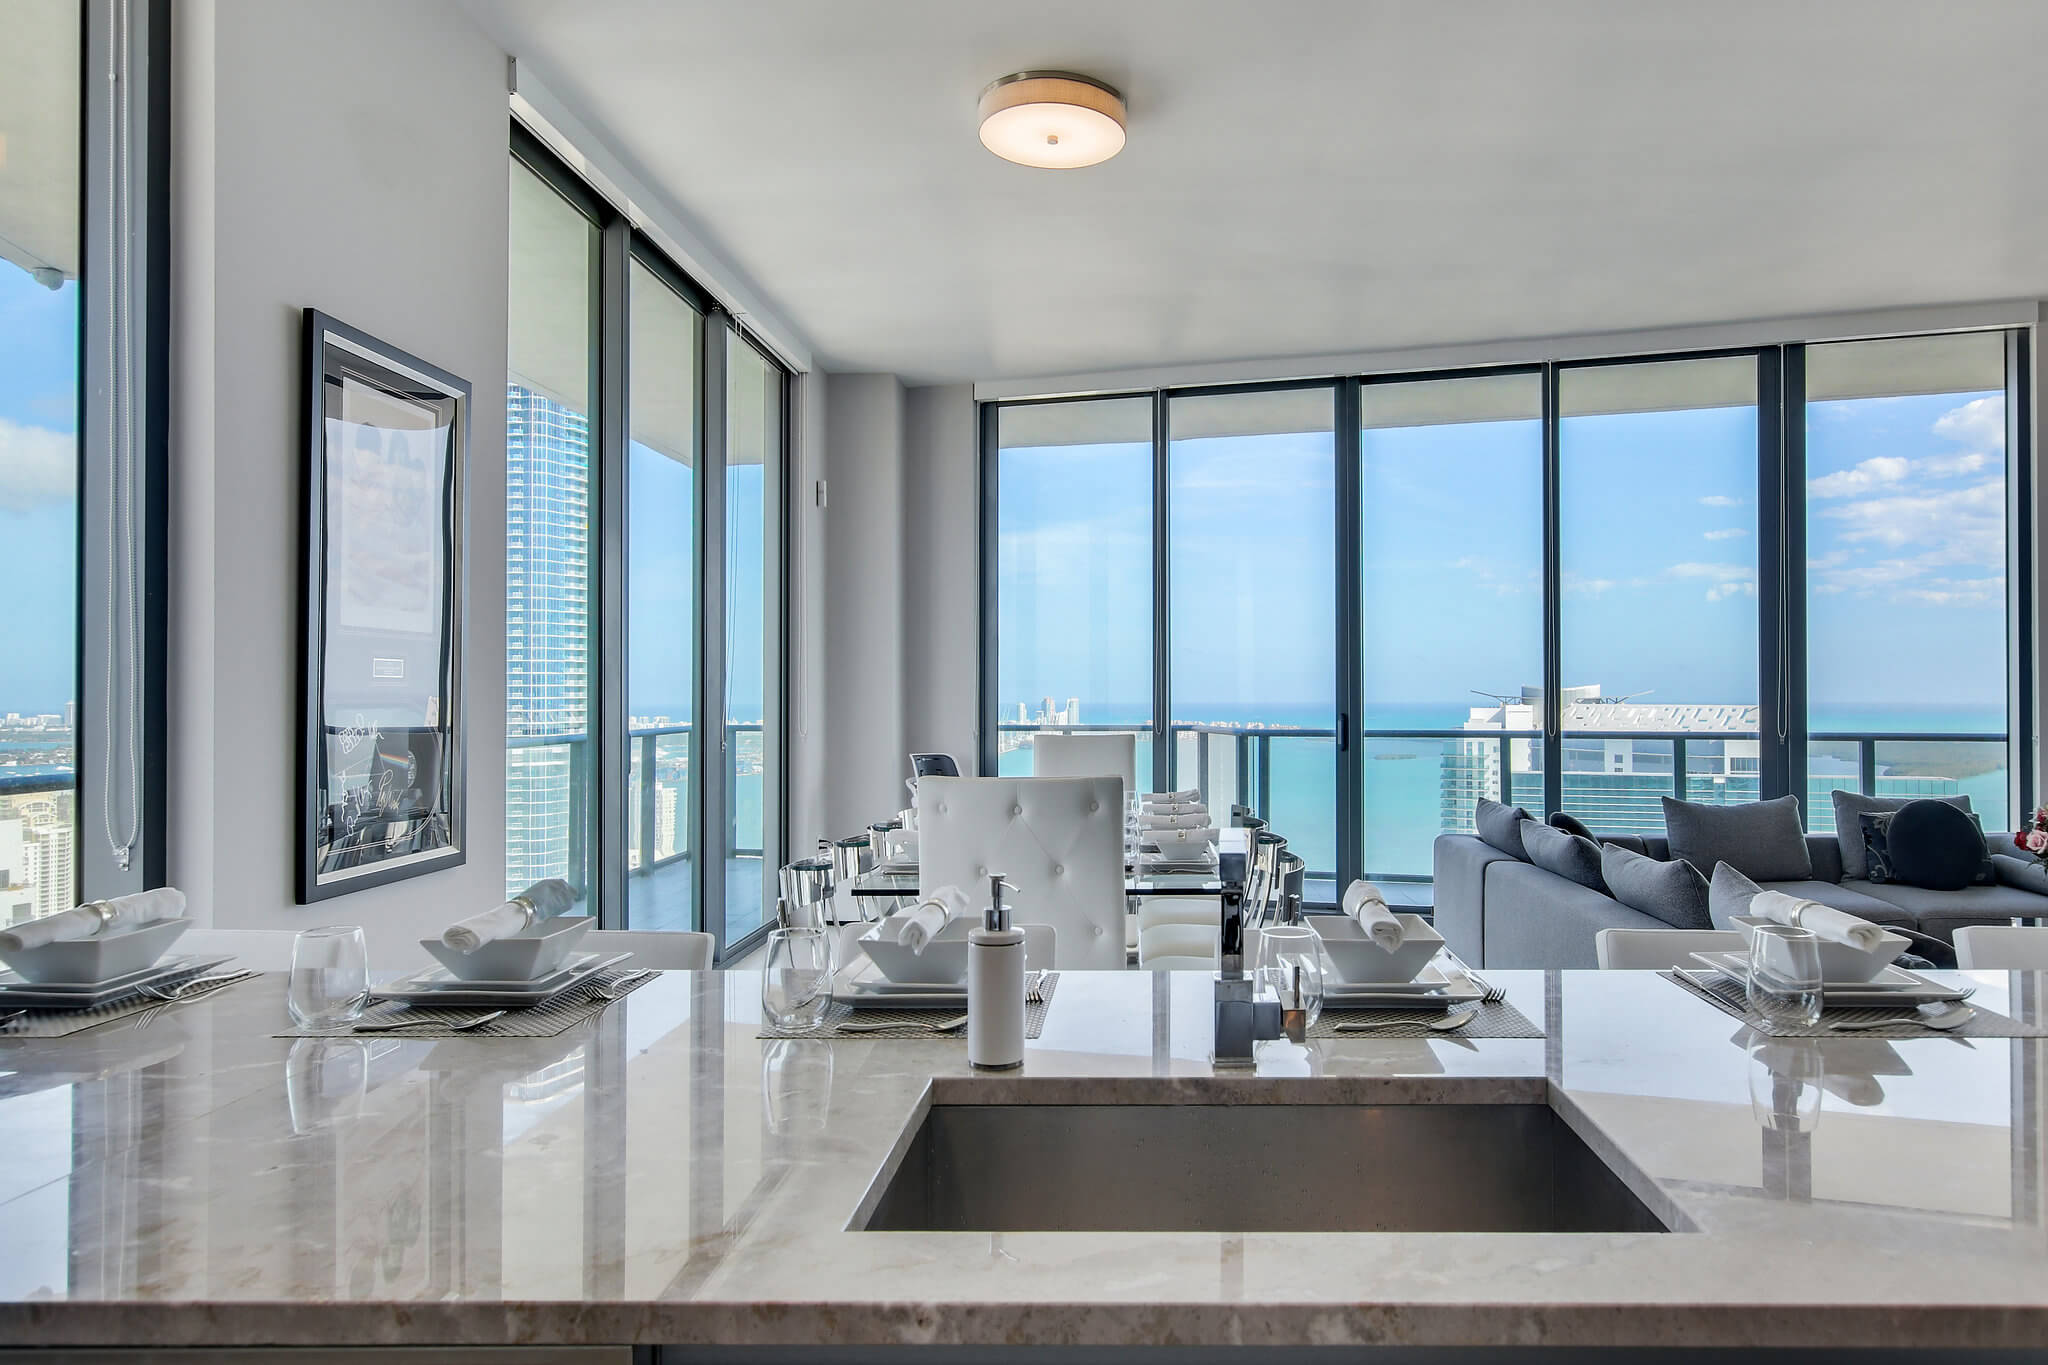 07__sls_brickell_photo_by_MiamiRealEstatePhotographers.com